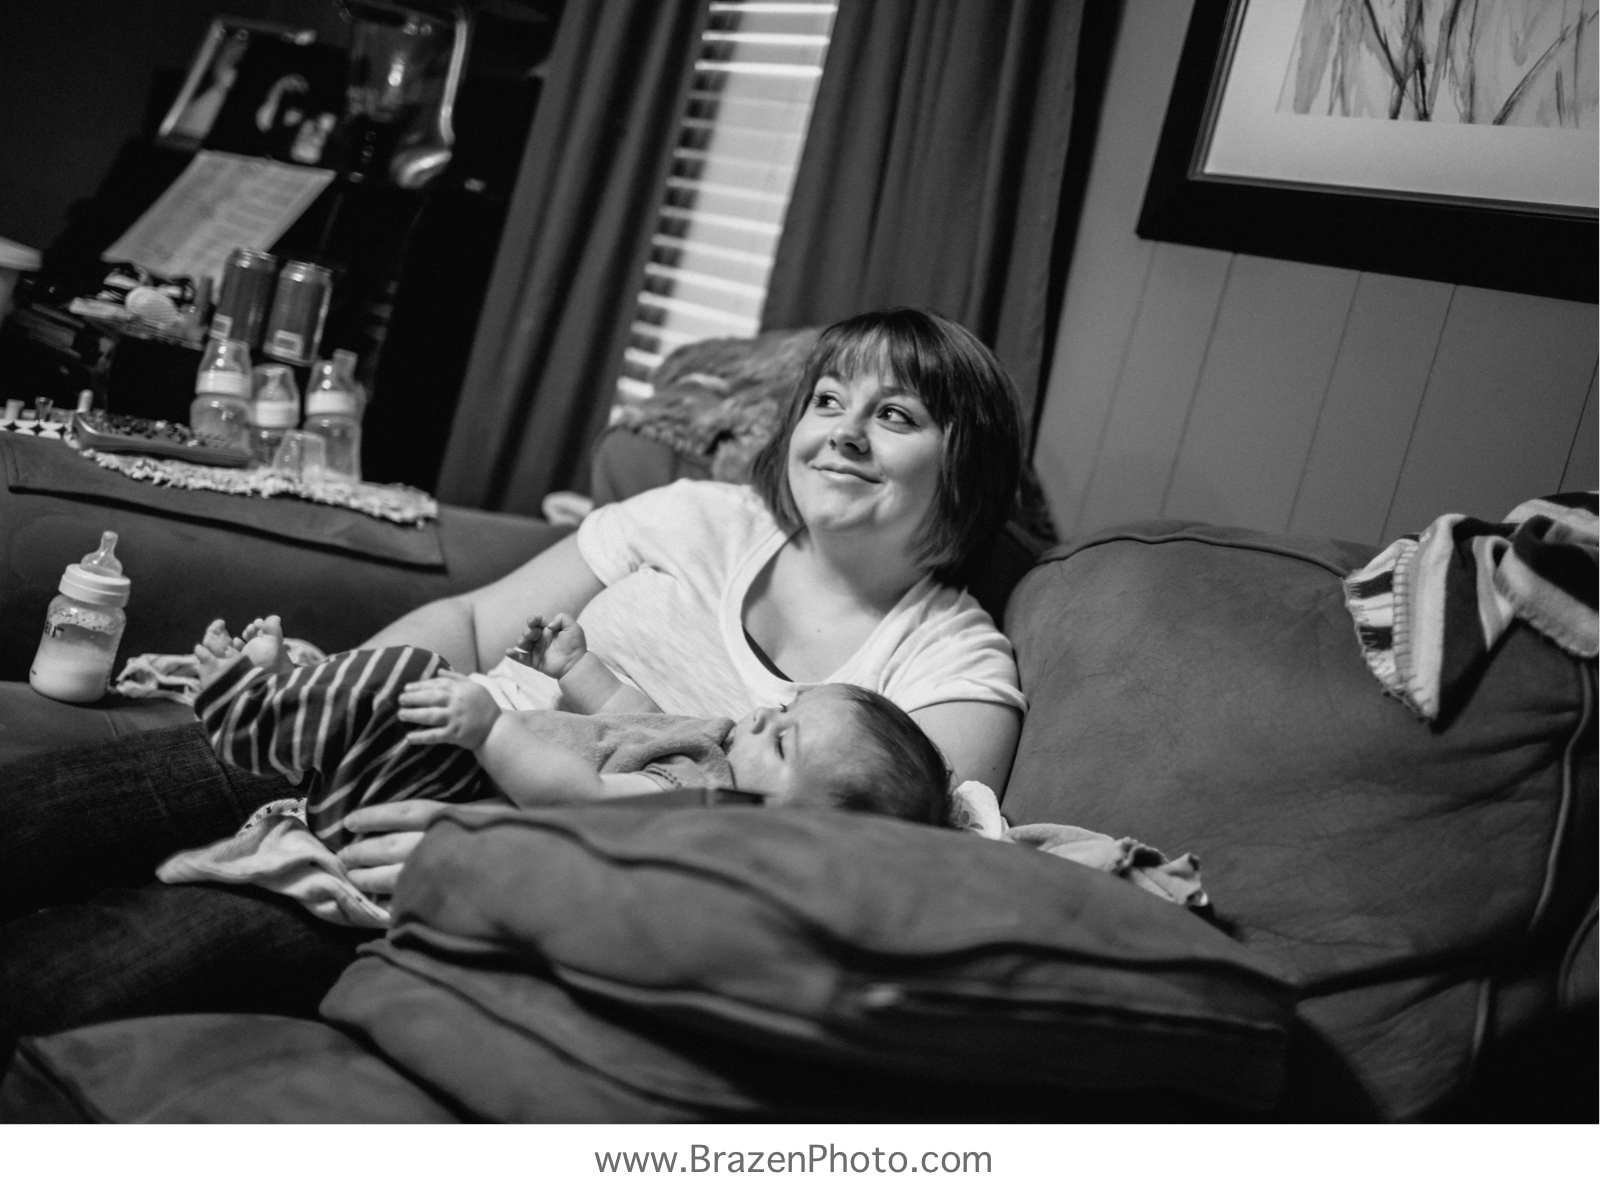 Orlando Family Photography-Brazen Photo-KBJ54.jpg